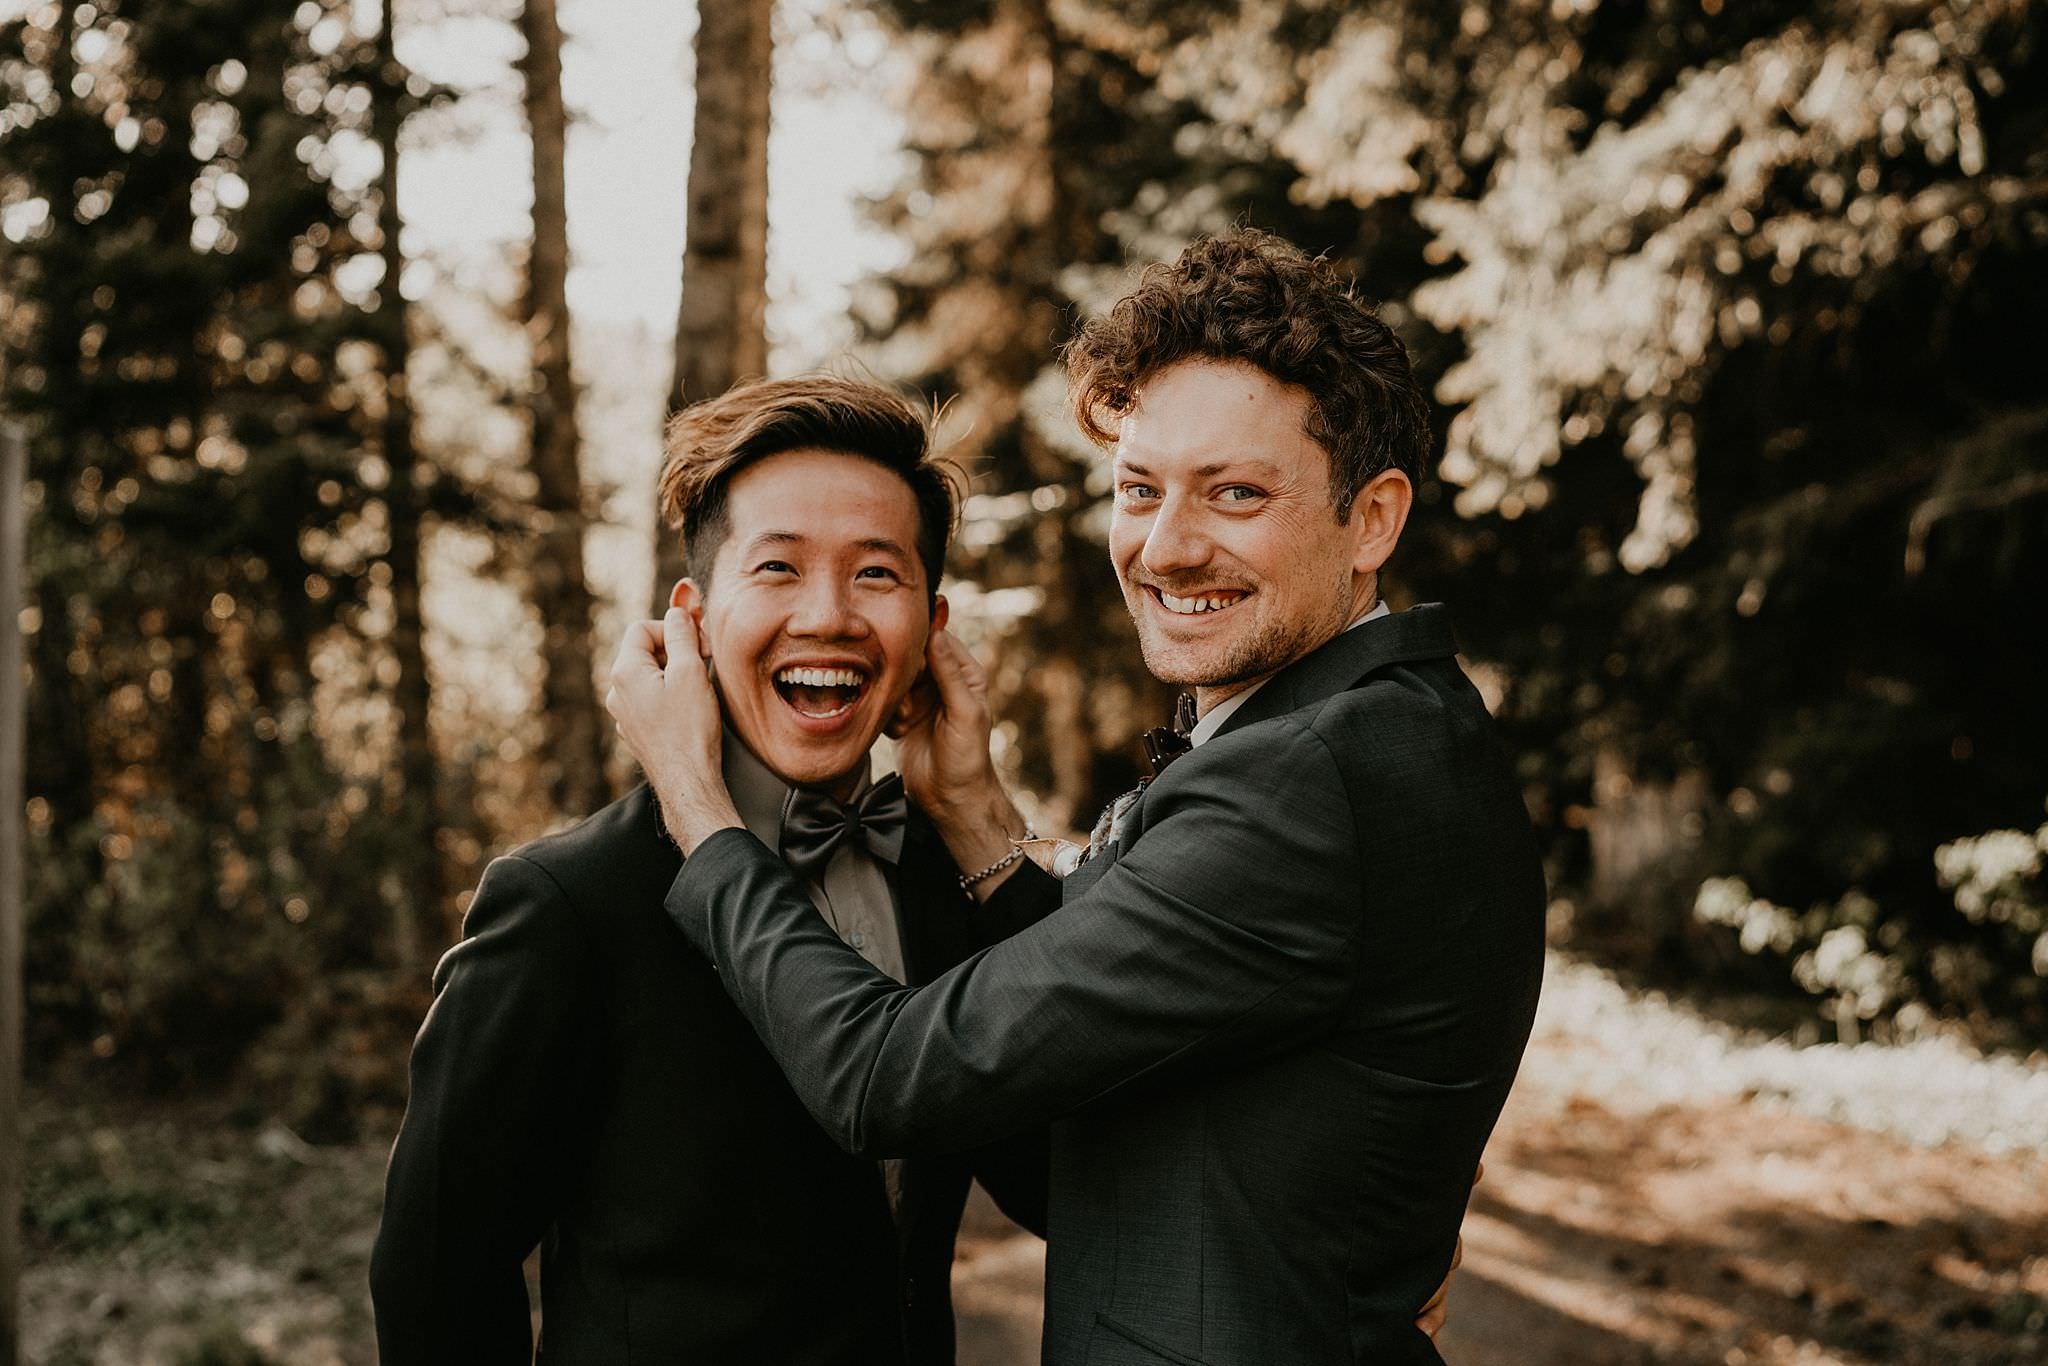 Summer elopement in the Pacific Northwest